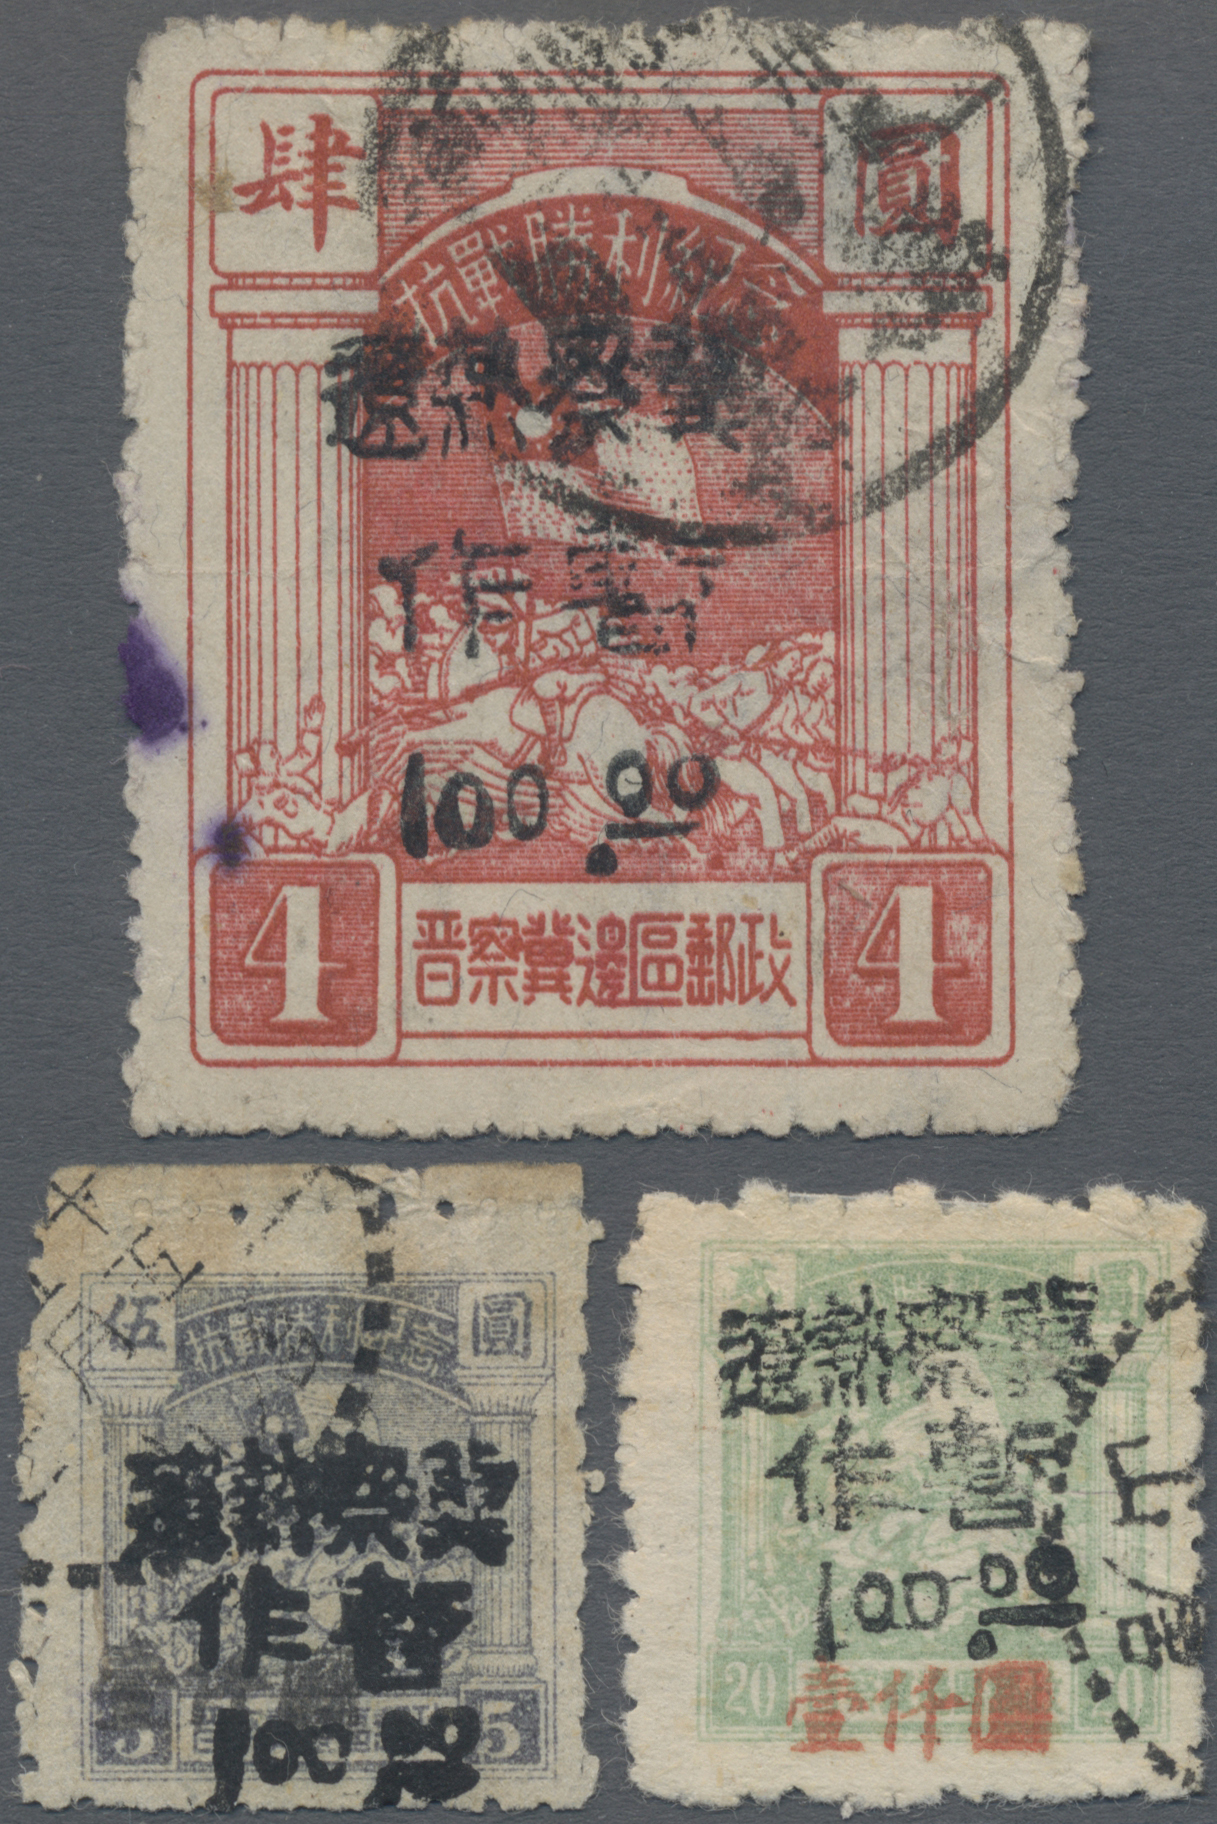 Lot 05512 - China - Volksrepublik - Provinzen  -  Auktionshaus Christoph Gärtner GmbH & Co. KG Sale #45- Special Auction China